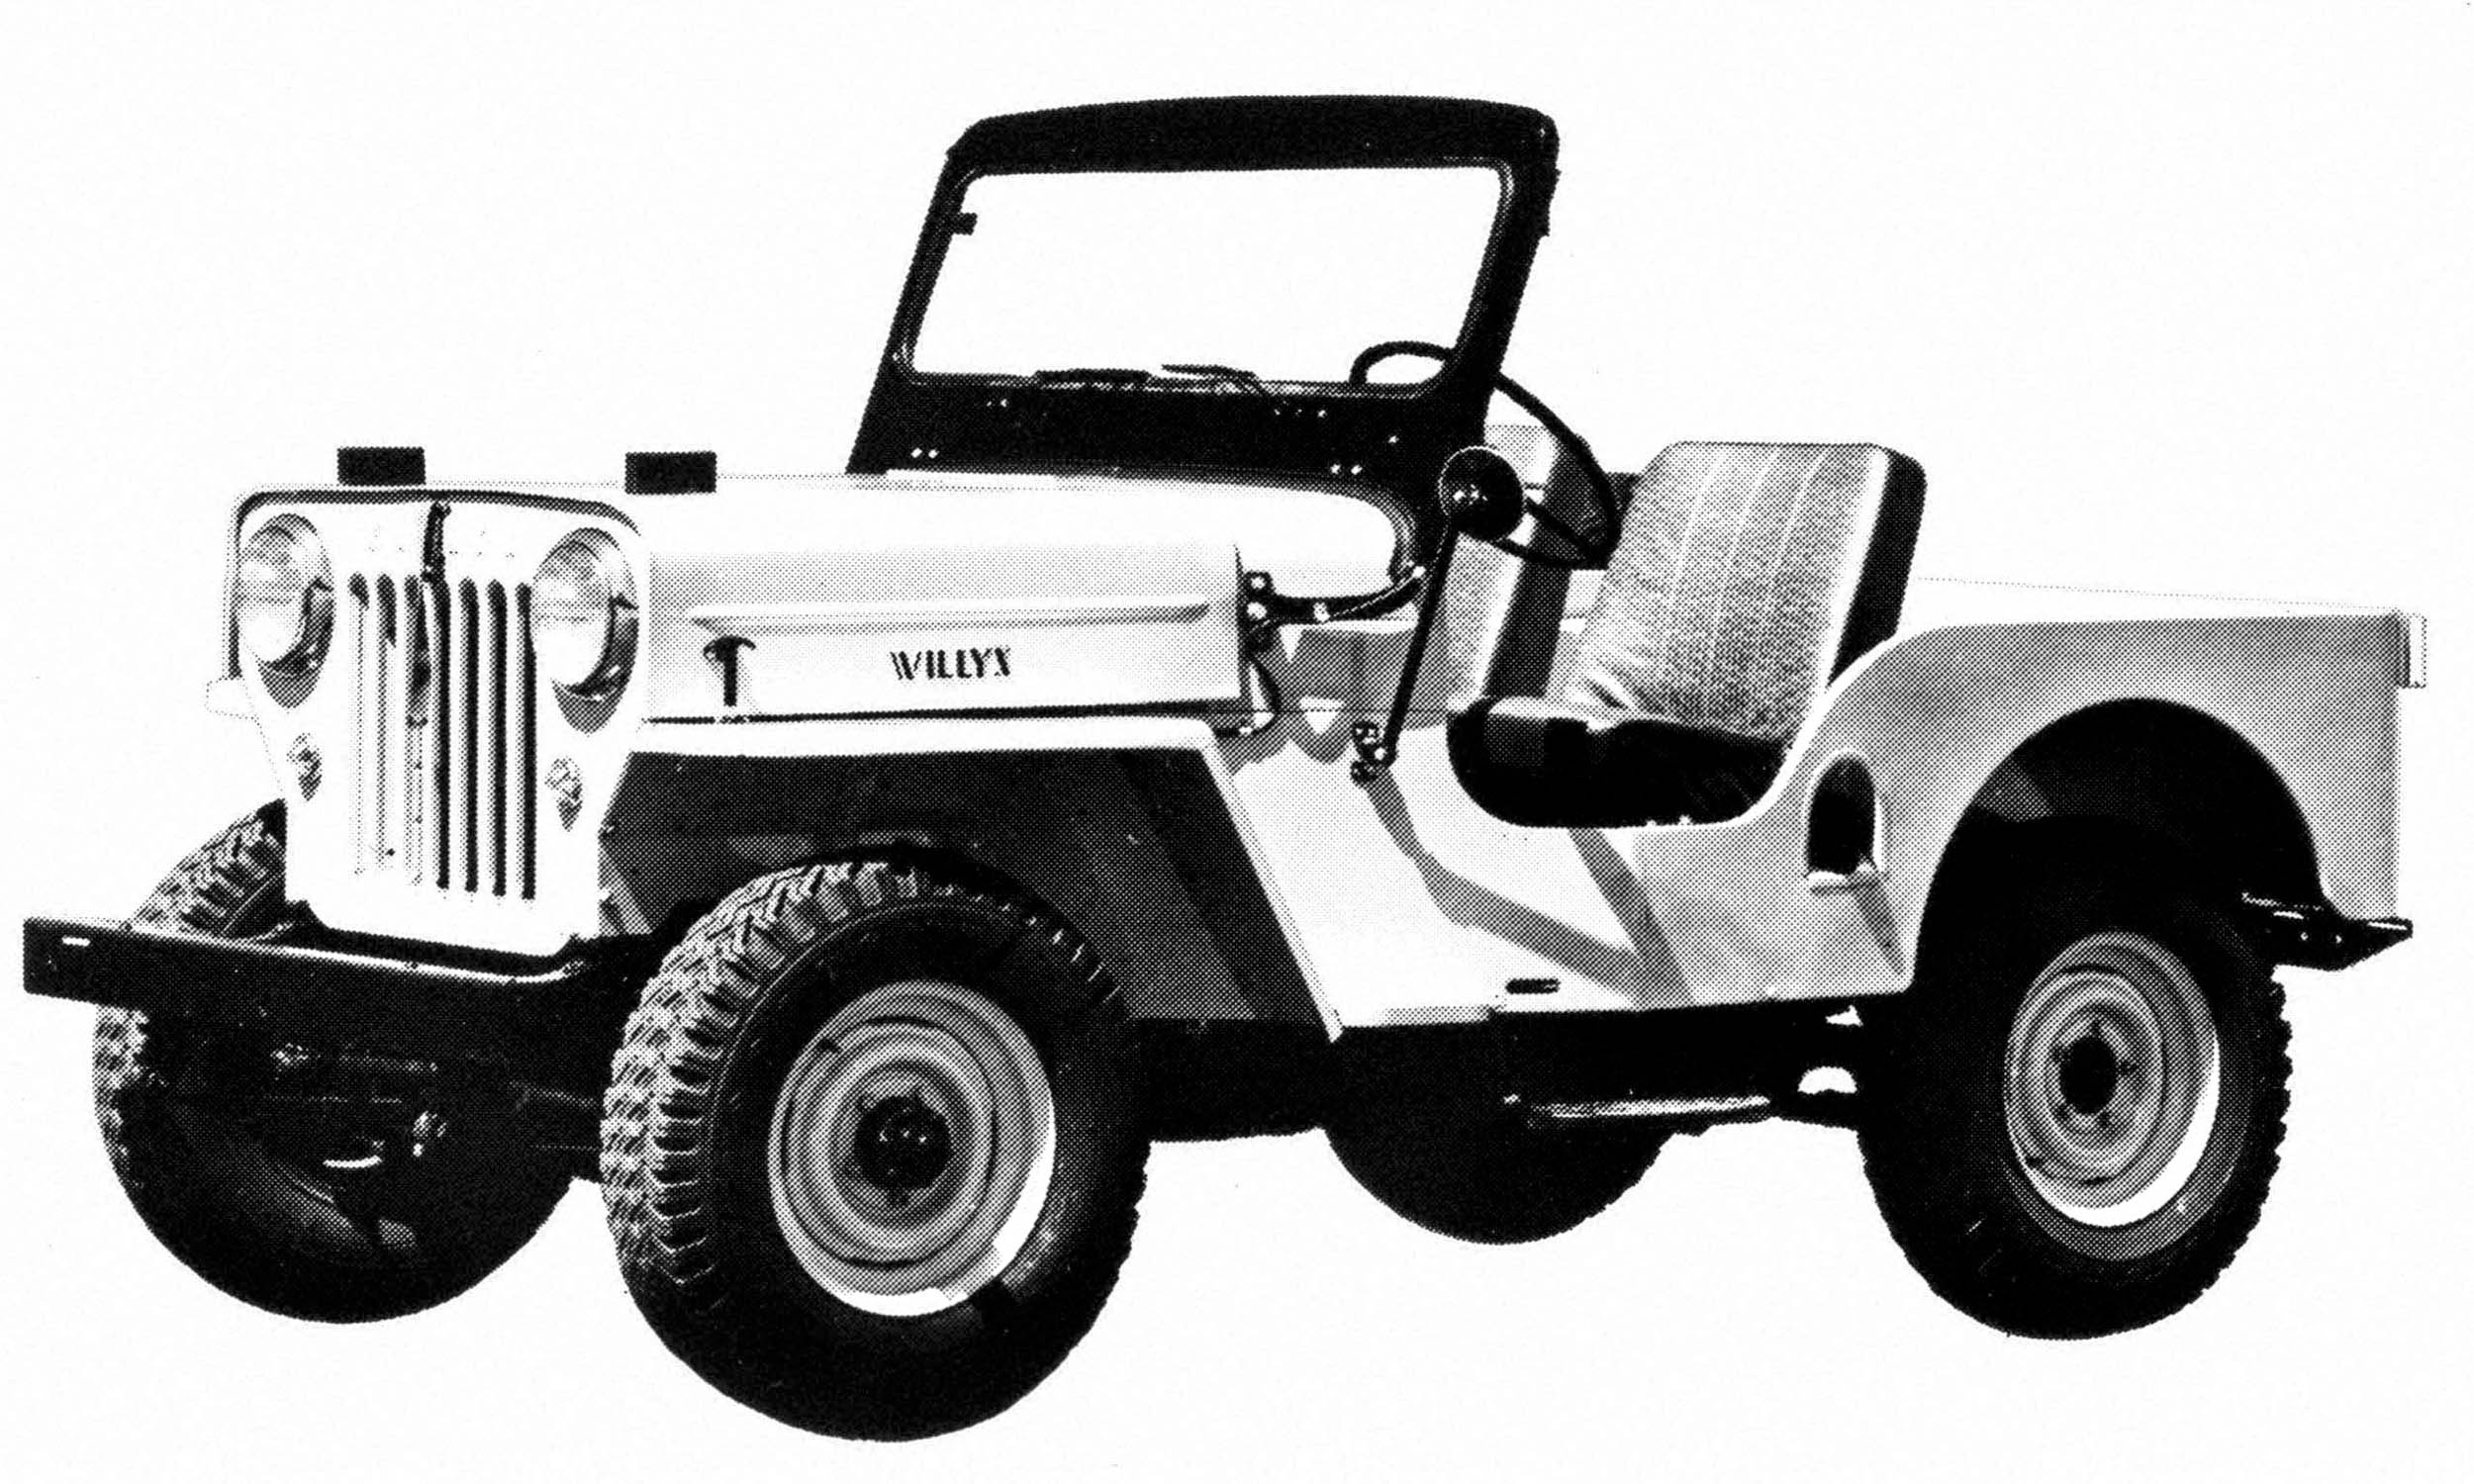 Jeep A Brief History Autonxt Cj5 Wiring Harness 250 The Cj Received Extensive Updates For 1953 As 3b With Taller Hood And Grille To Fit Larger Hurricane Engine That Produced 25 Percent More